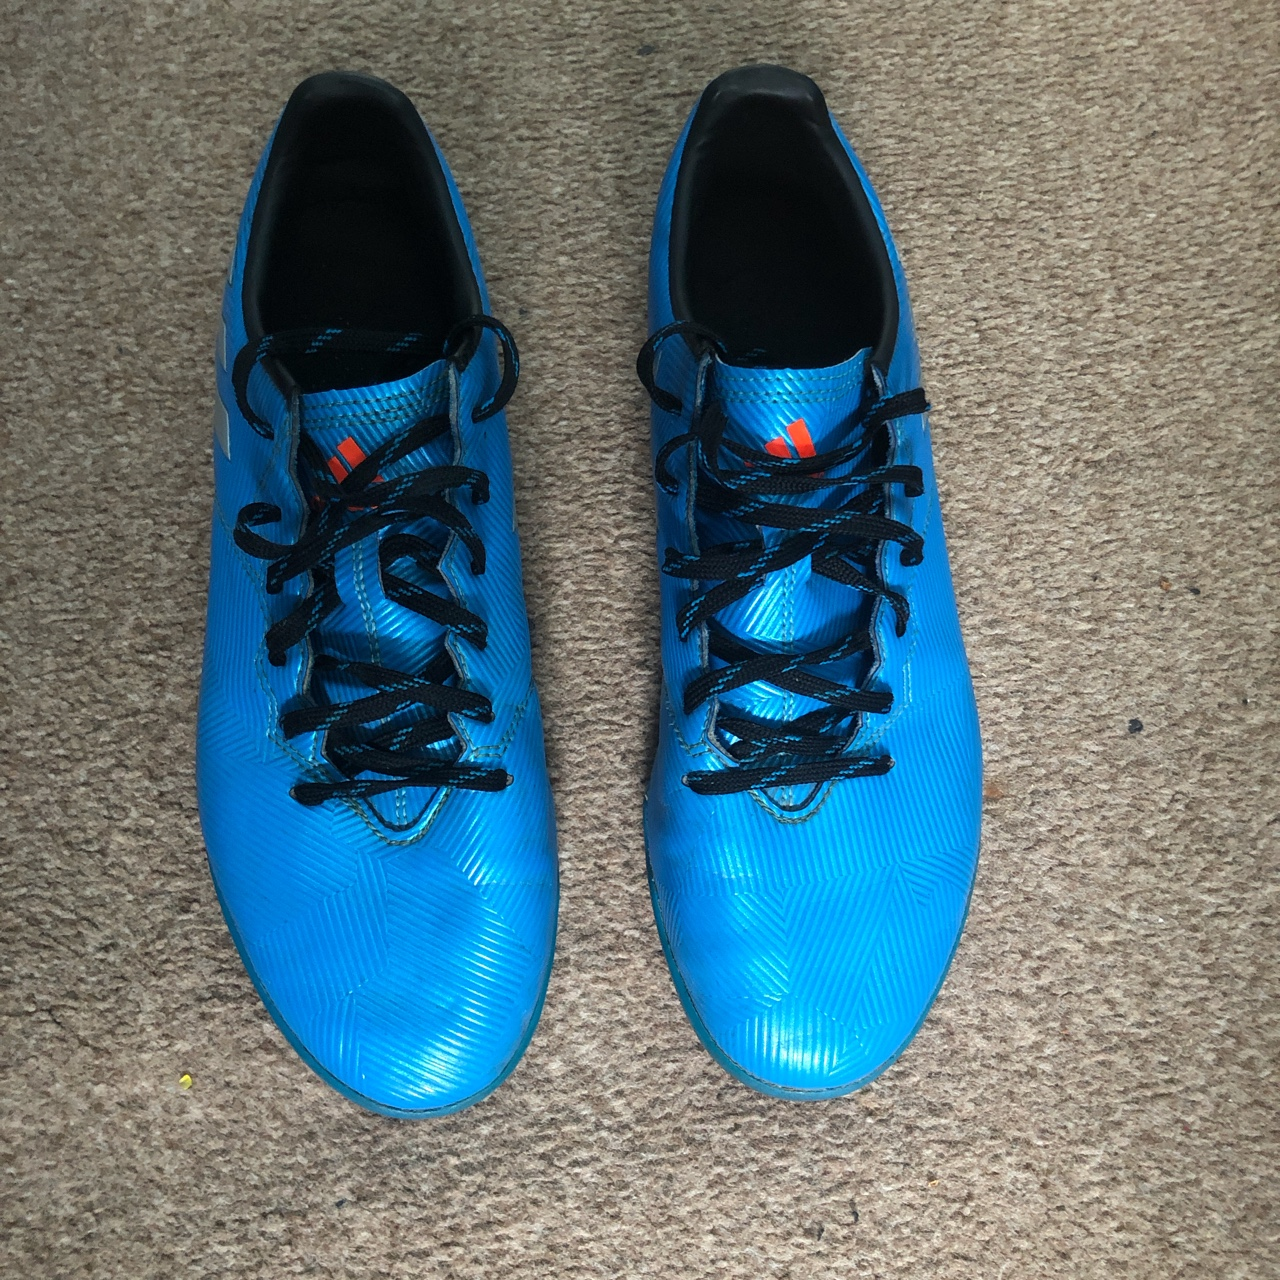 Adidas blue messi Astro turf boots 16.4